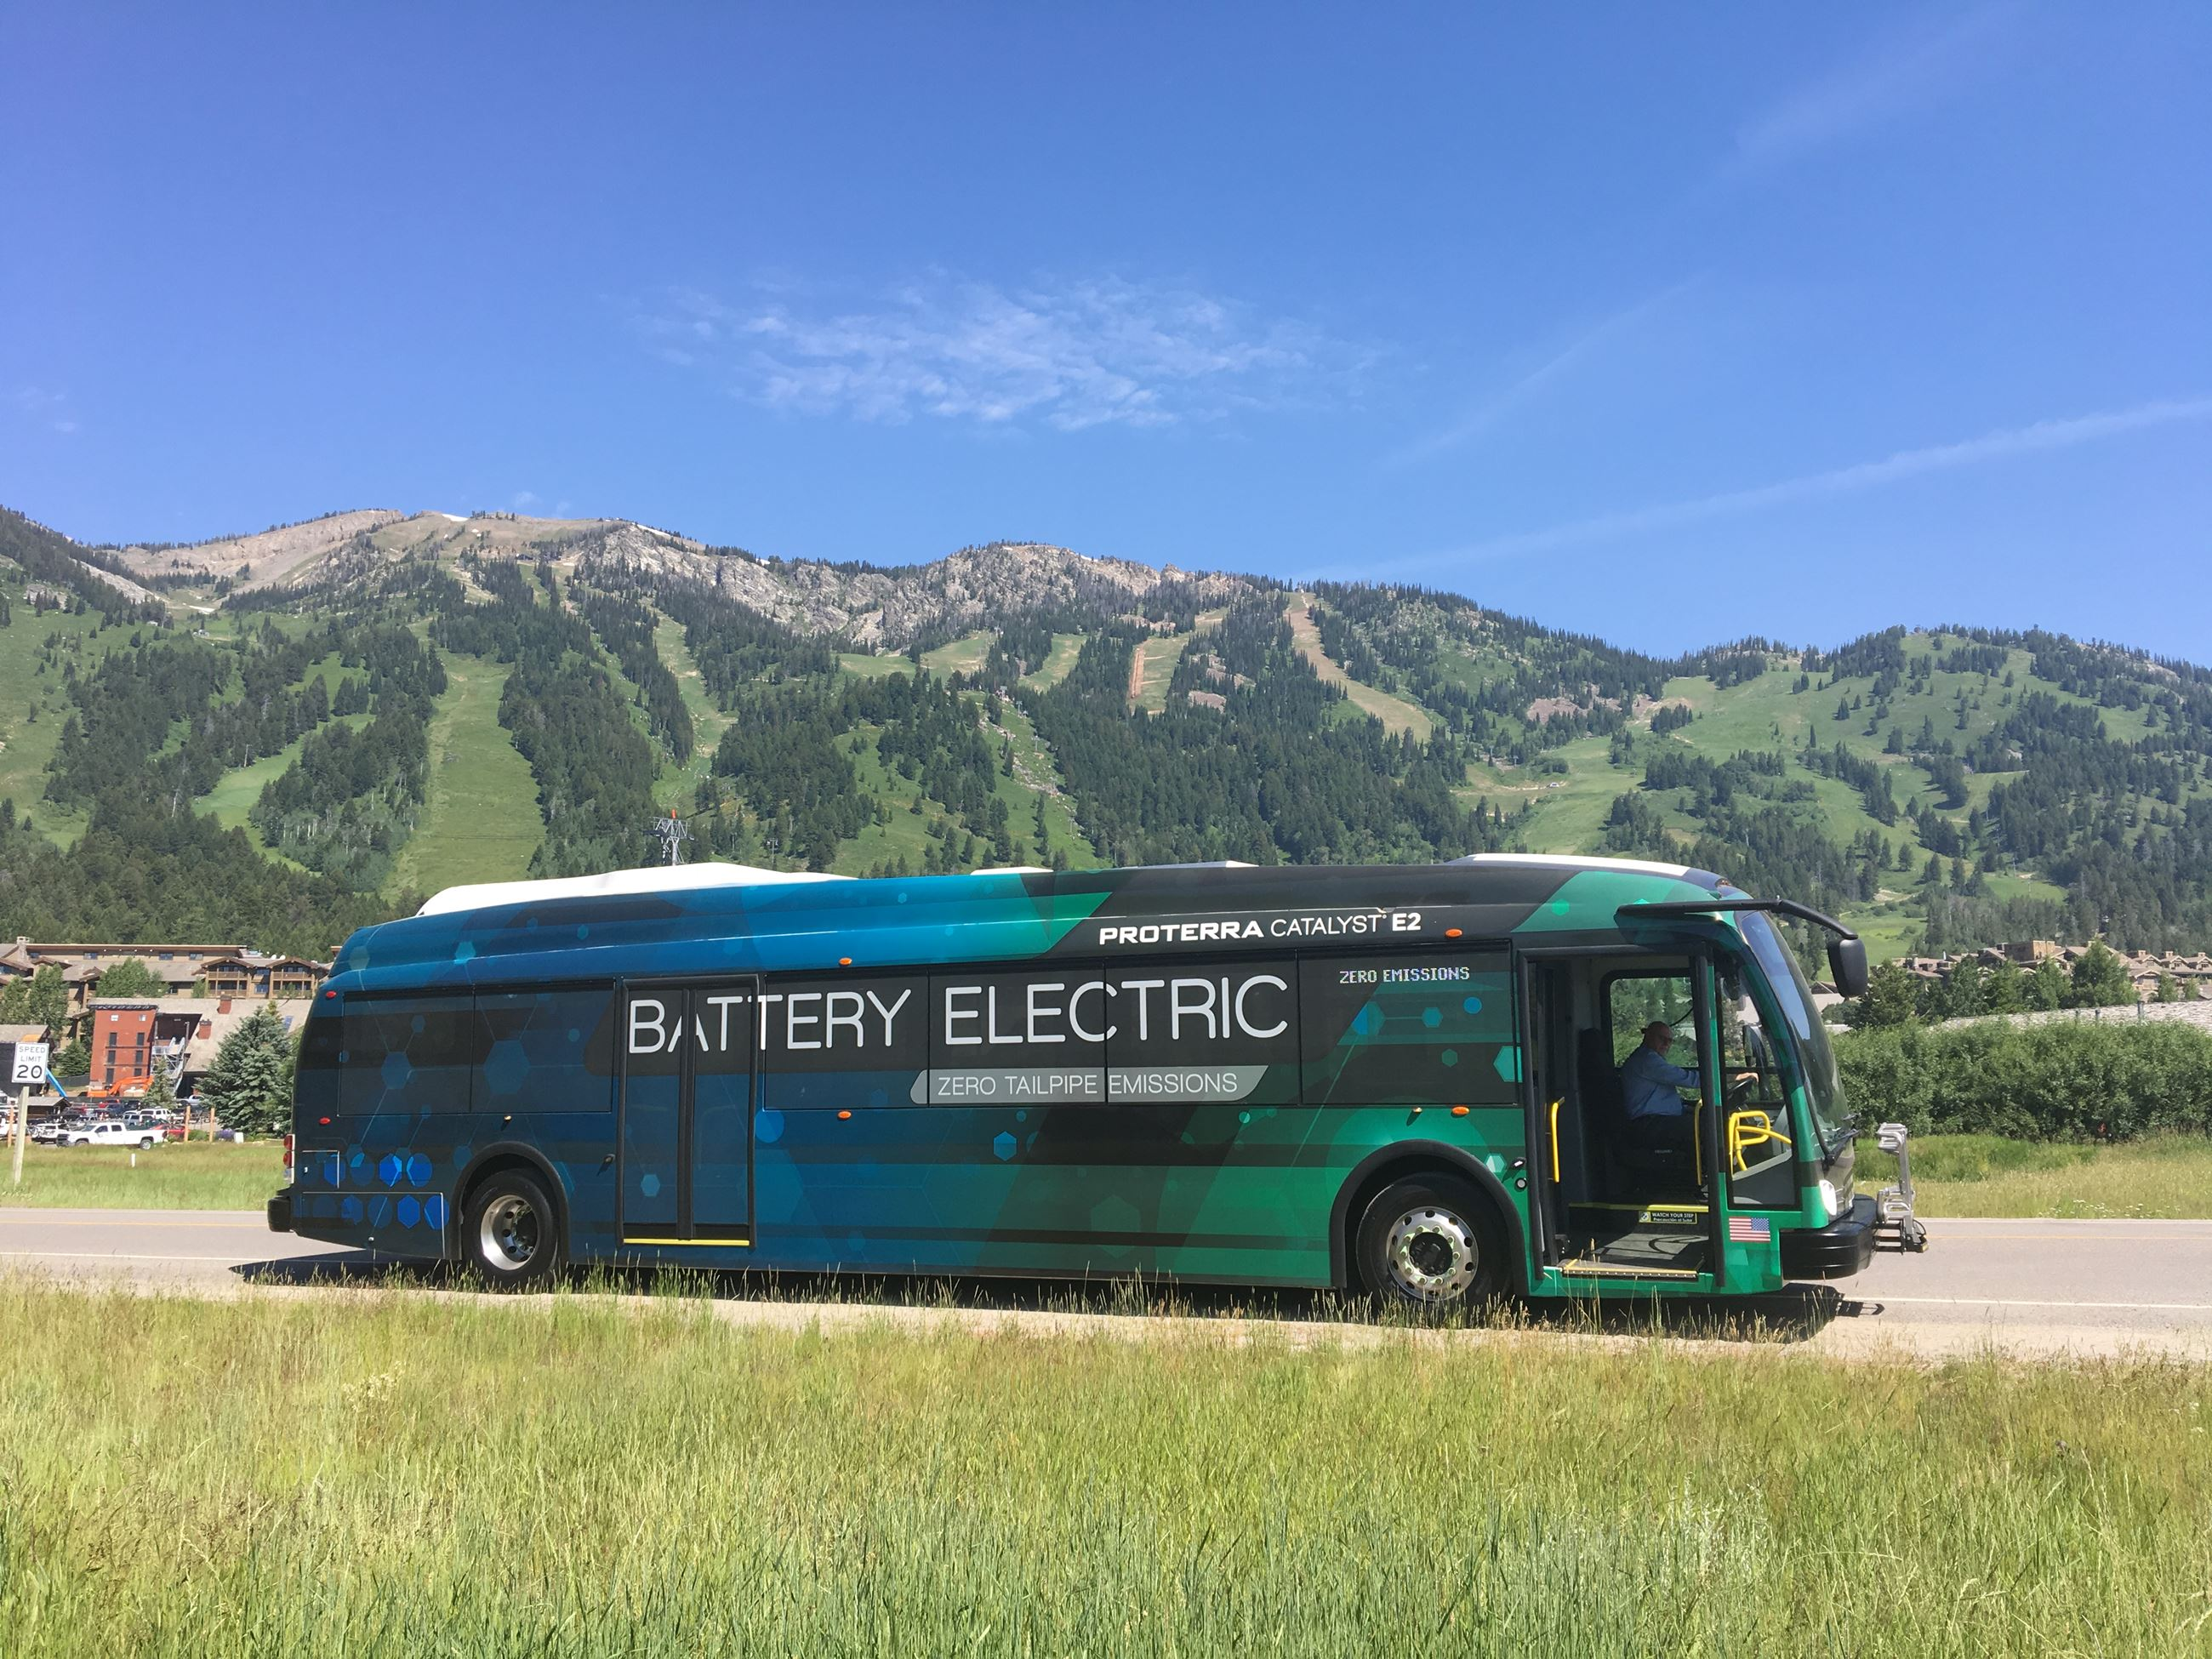 Image of a Proterra bus